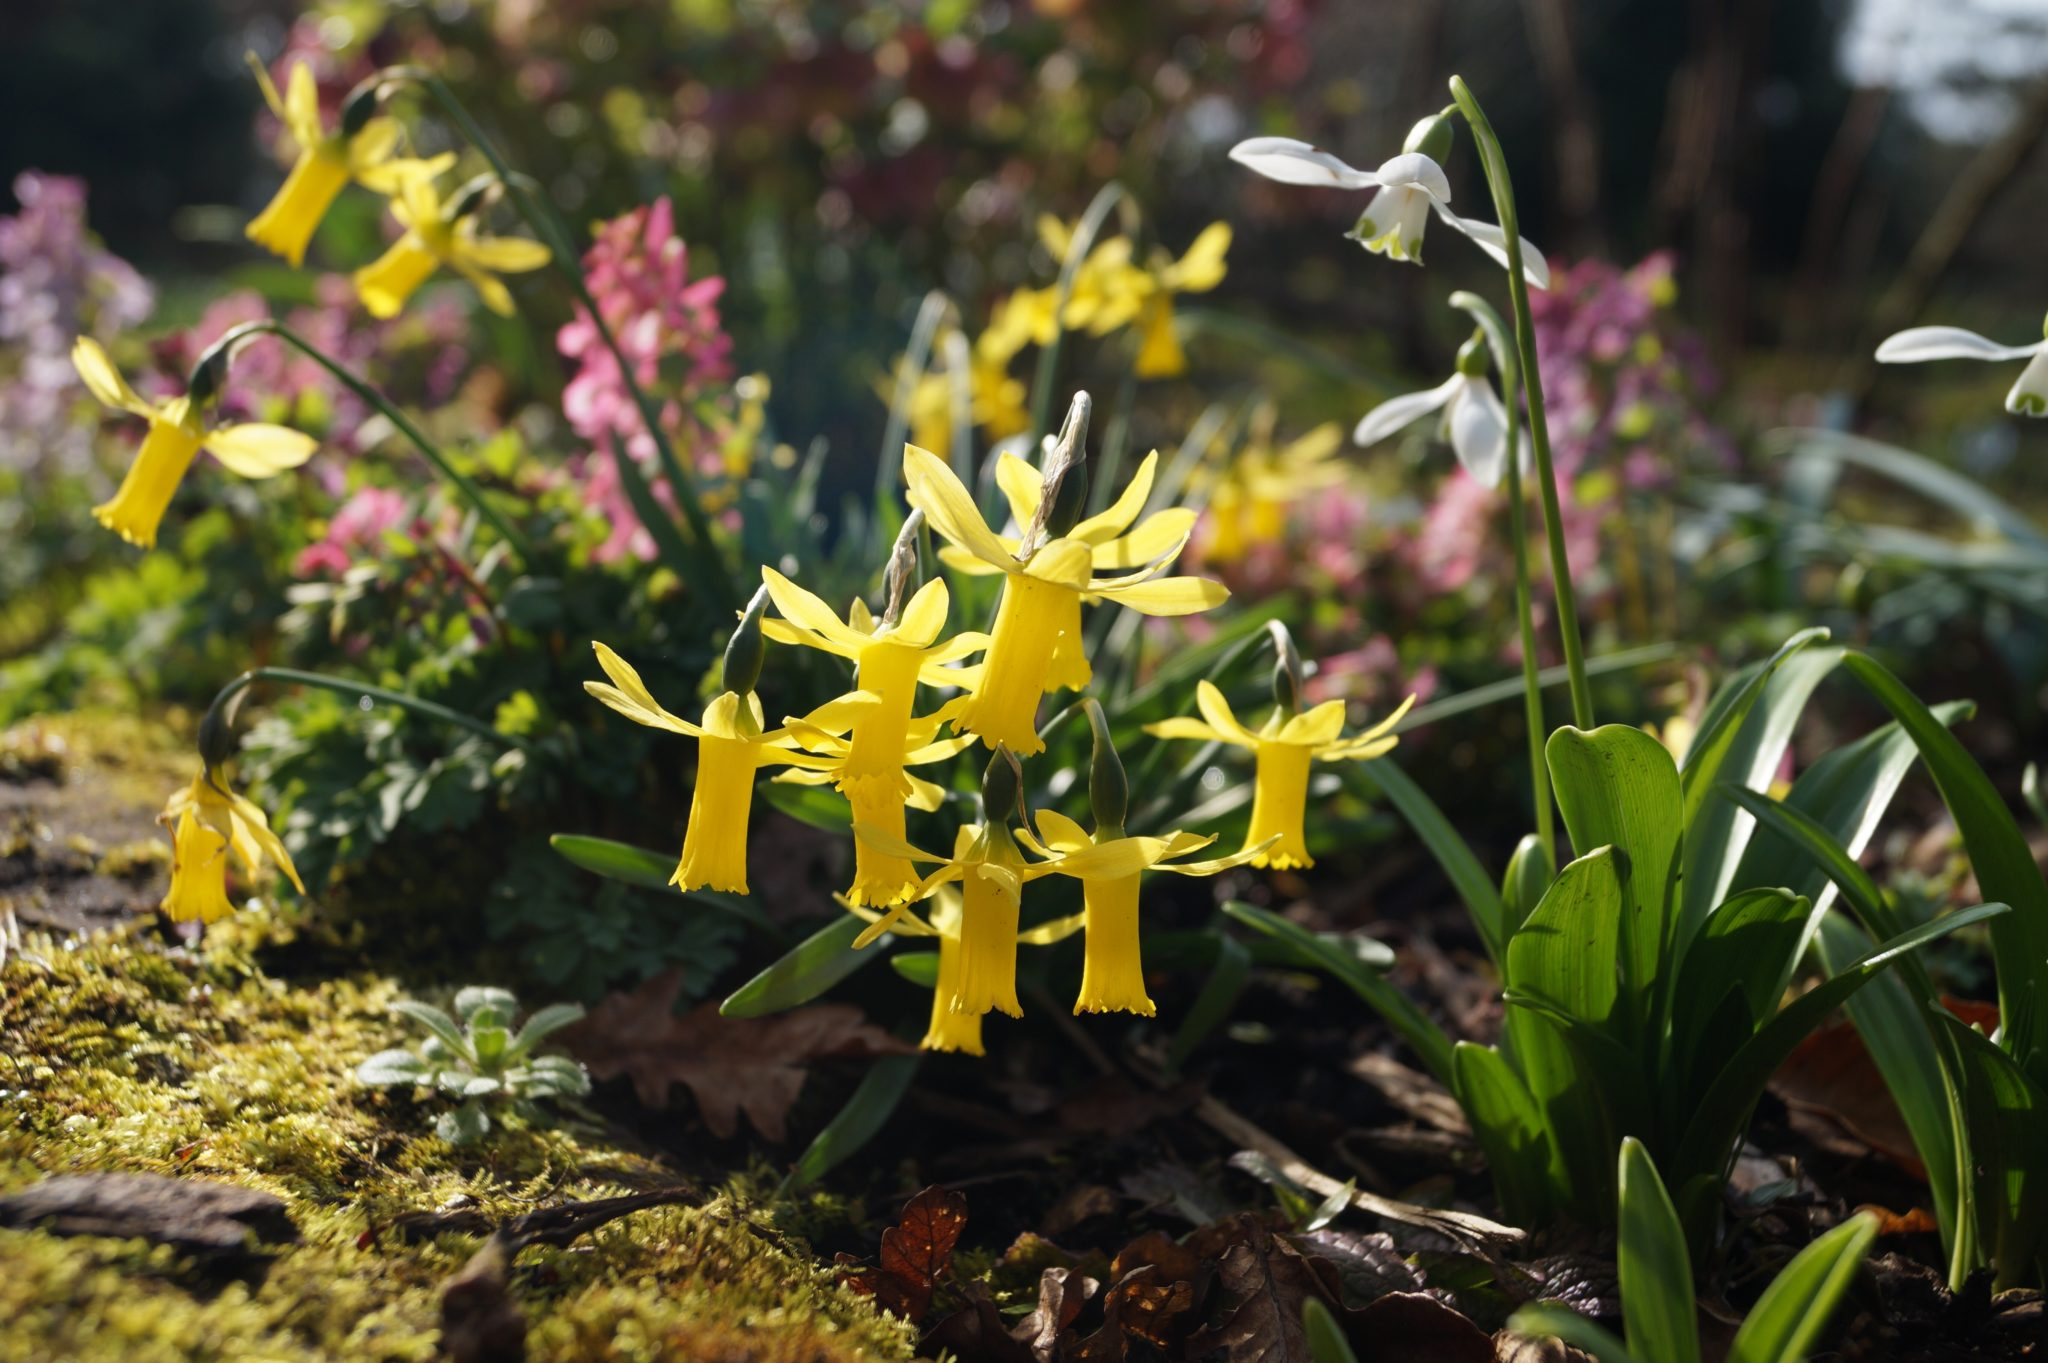 narcissus_minicycla_morlas_plants